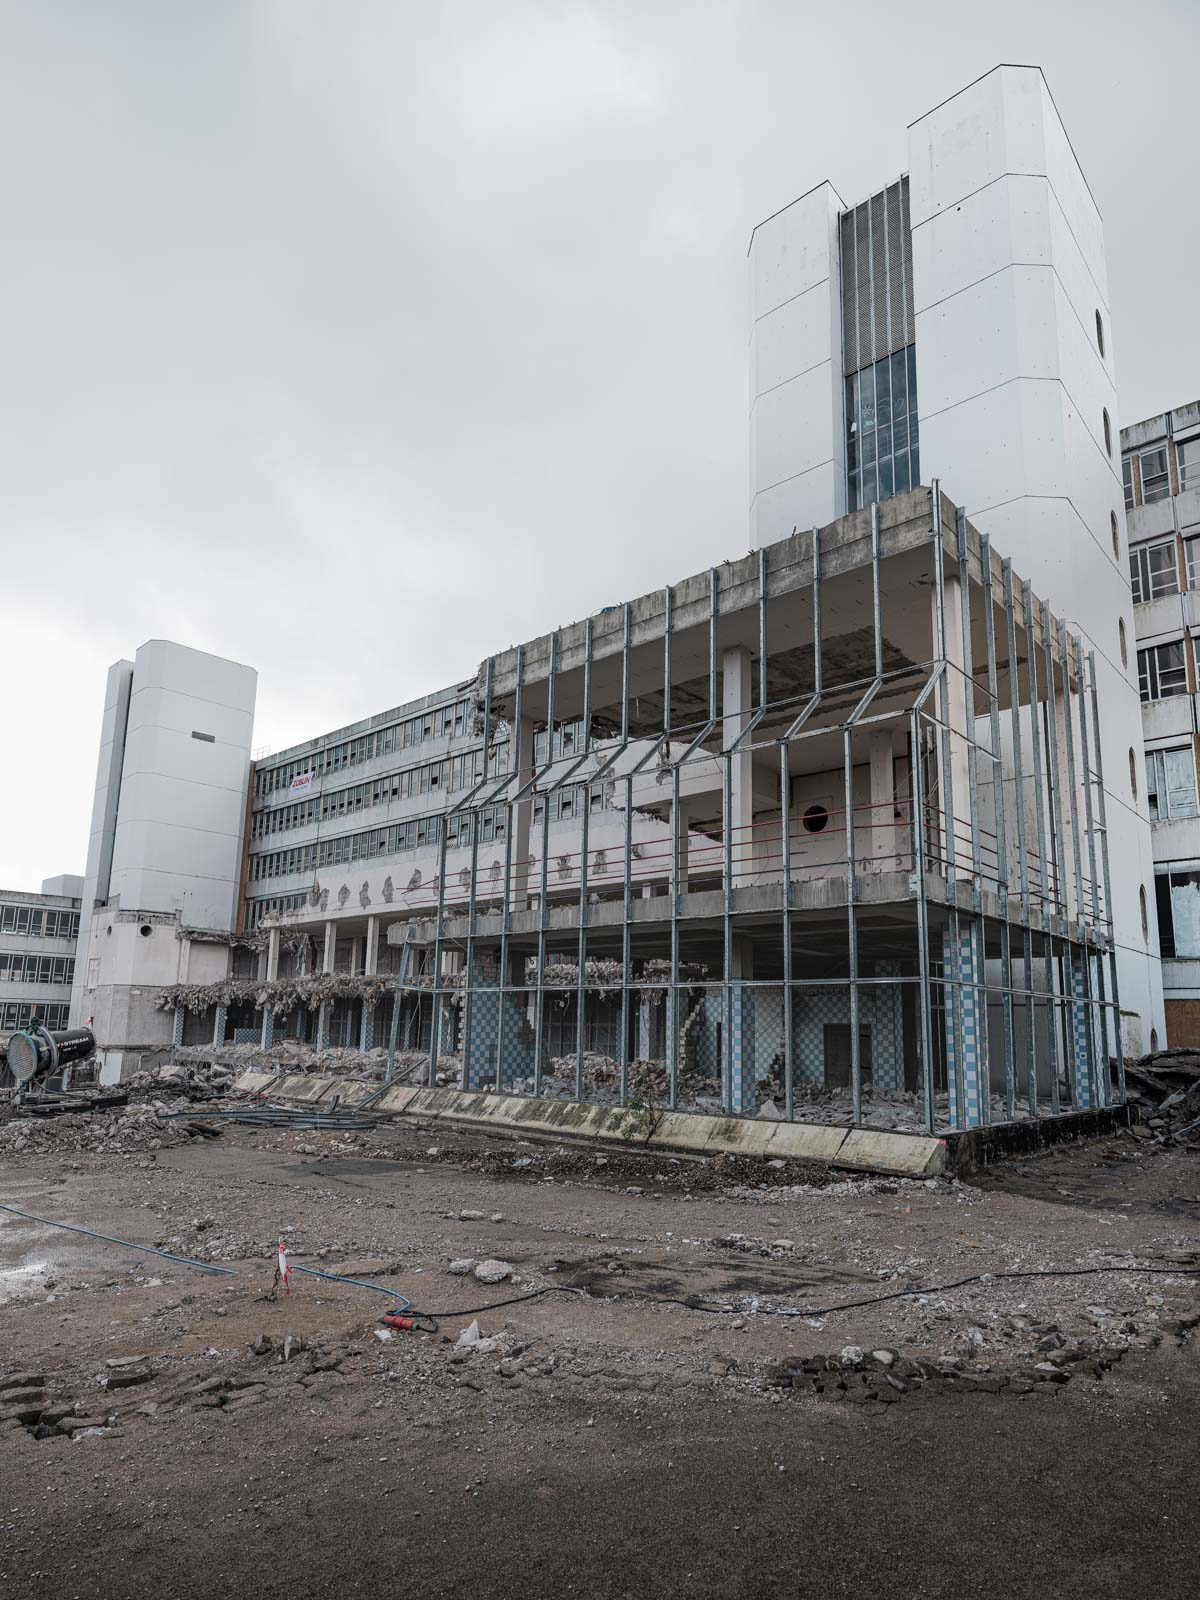 End of an era. Demolition of the canteen of Bielefeld University in July 2020 (Bielefeld, Germany).